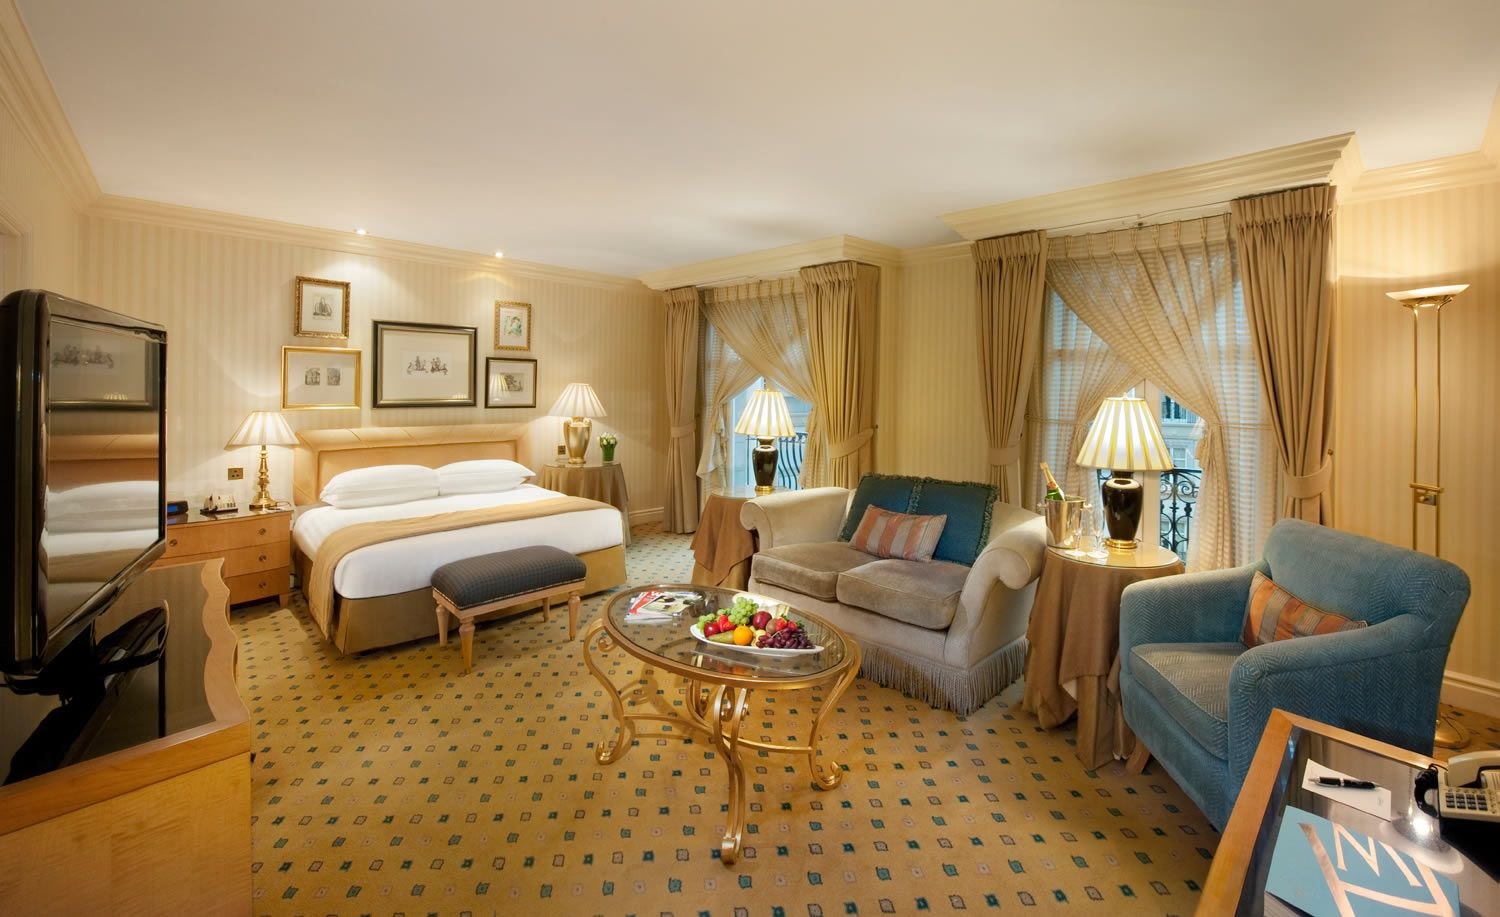 Executive At 5 Star Hotel Landmark London This S Address Is 222 Marylebone Road Hyde Park And Have 300 Rooms